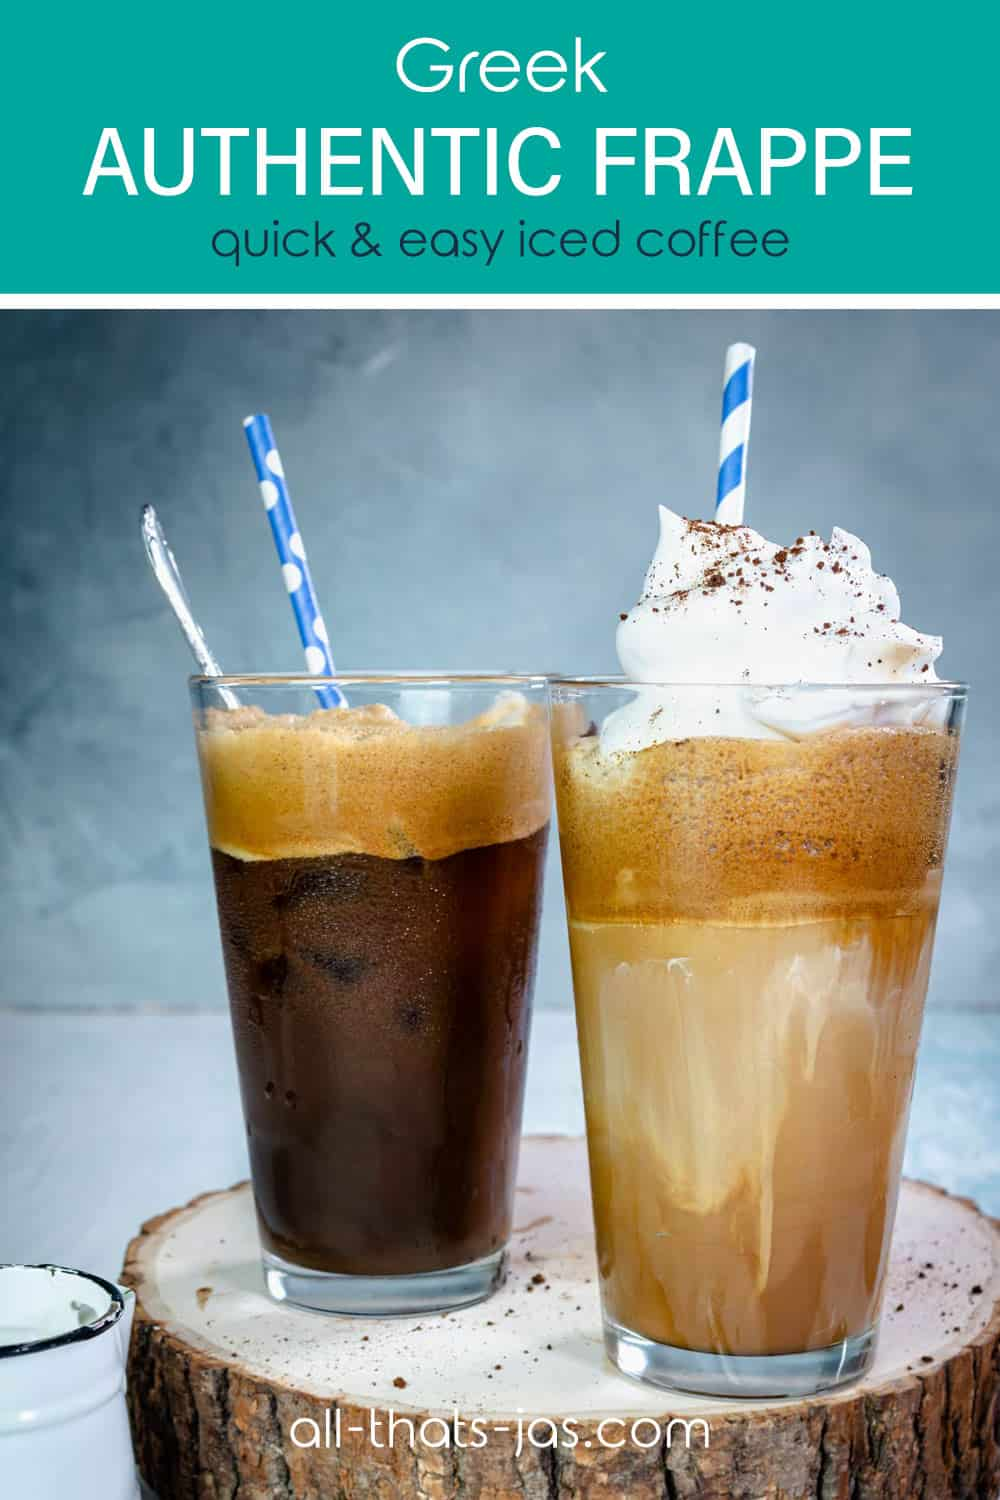 Two frappe drinks with text overlay.